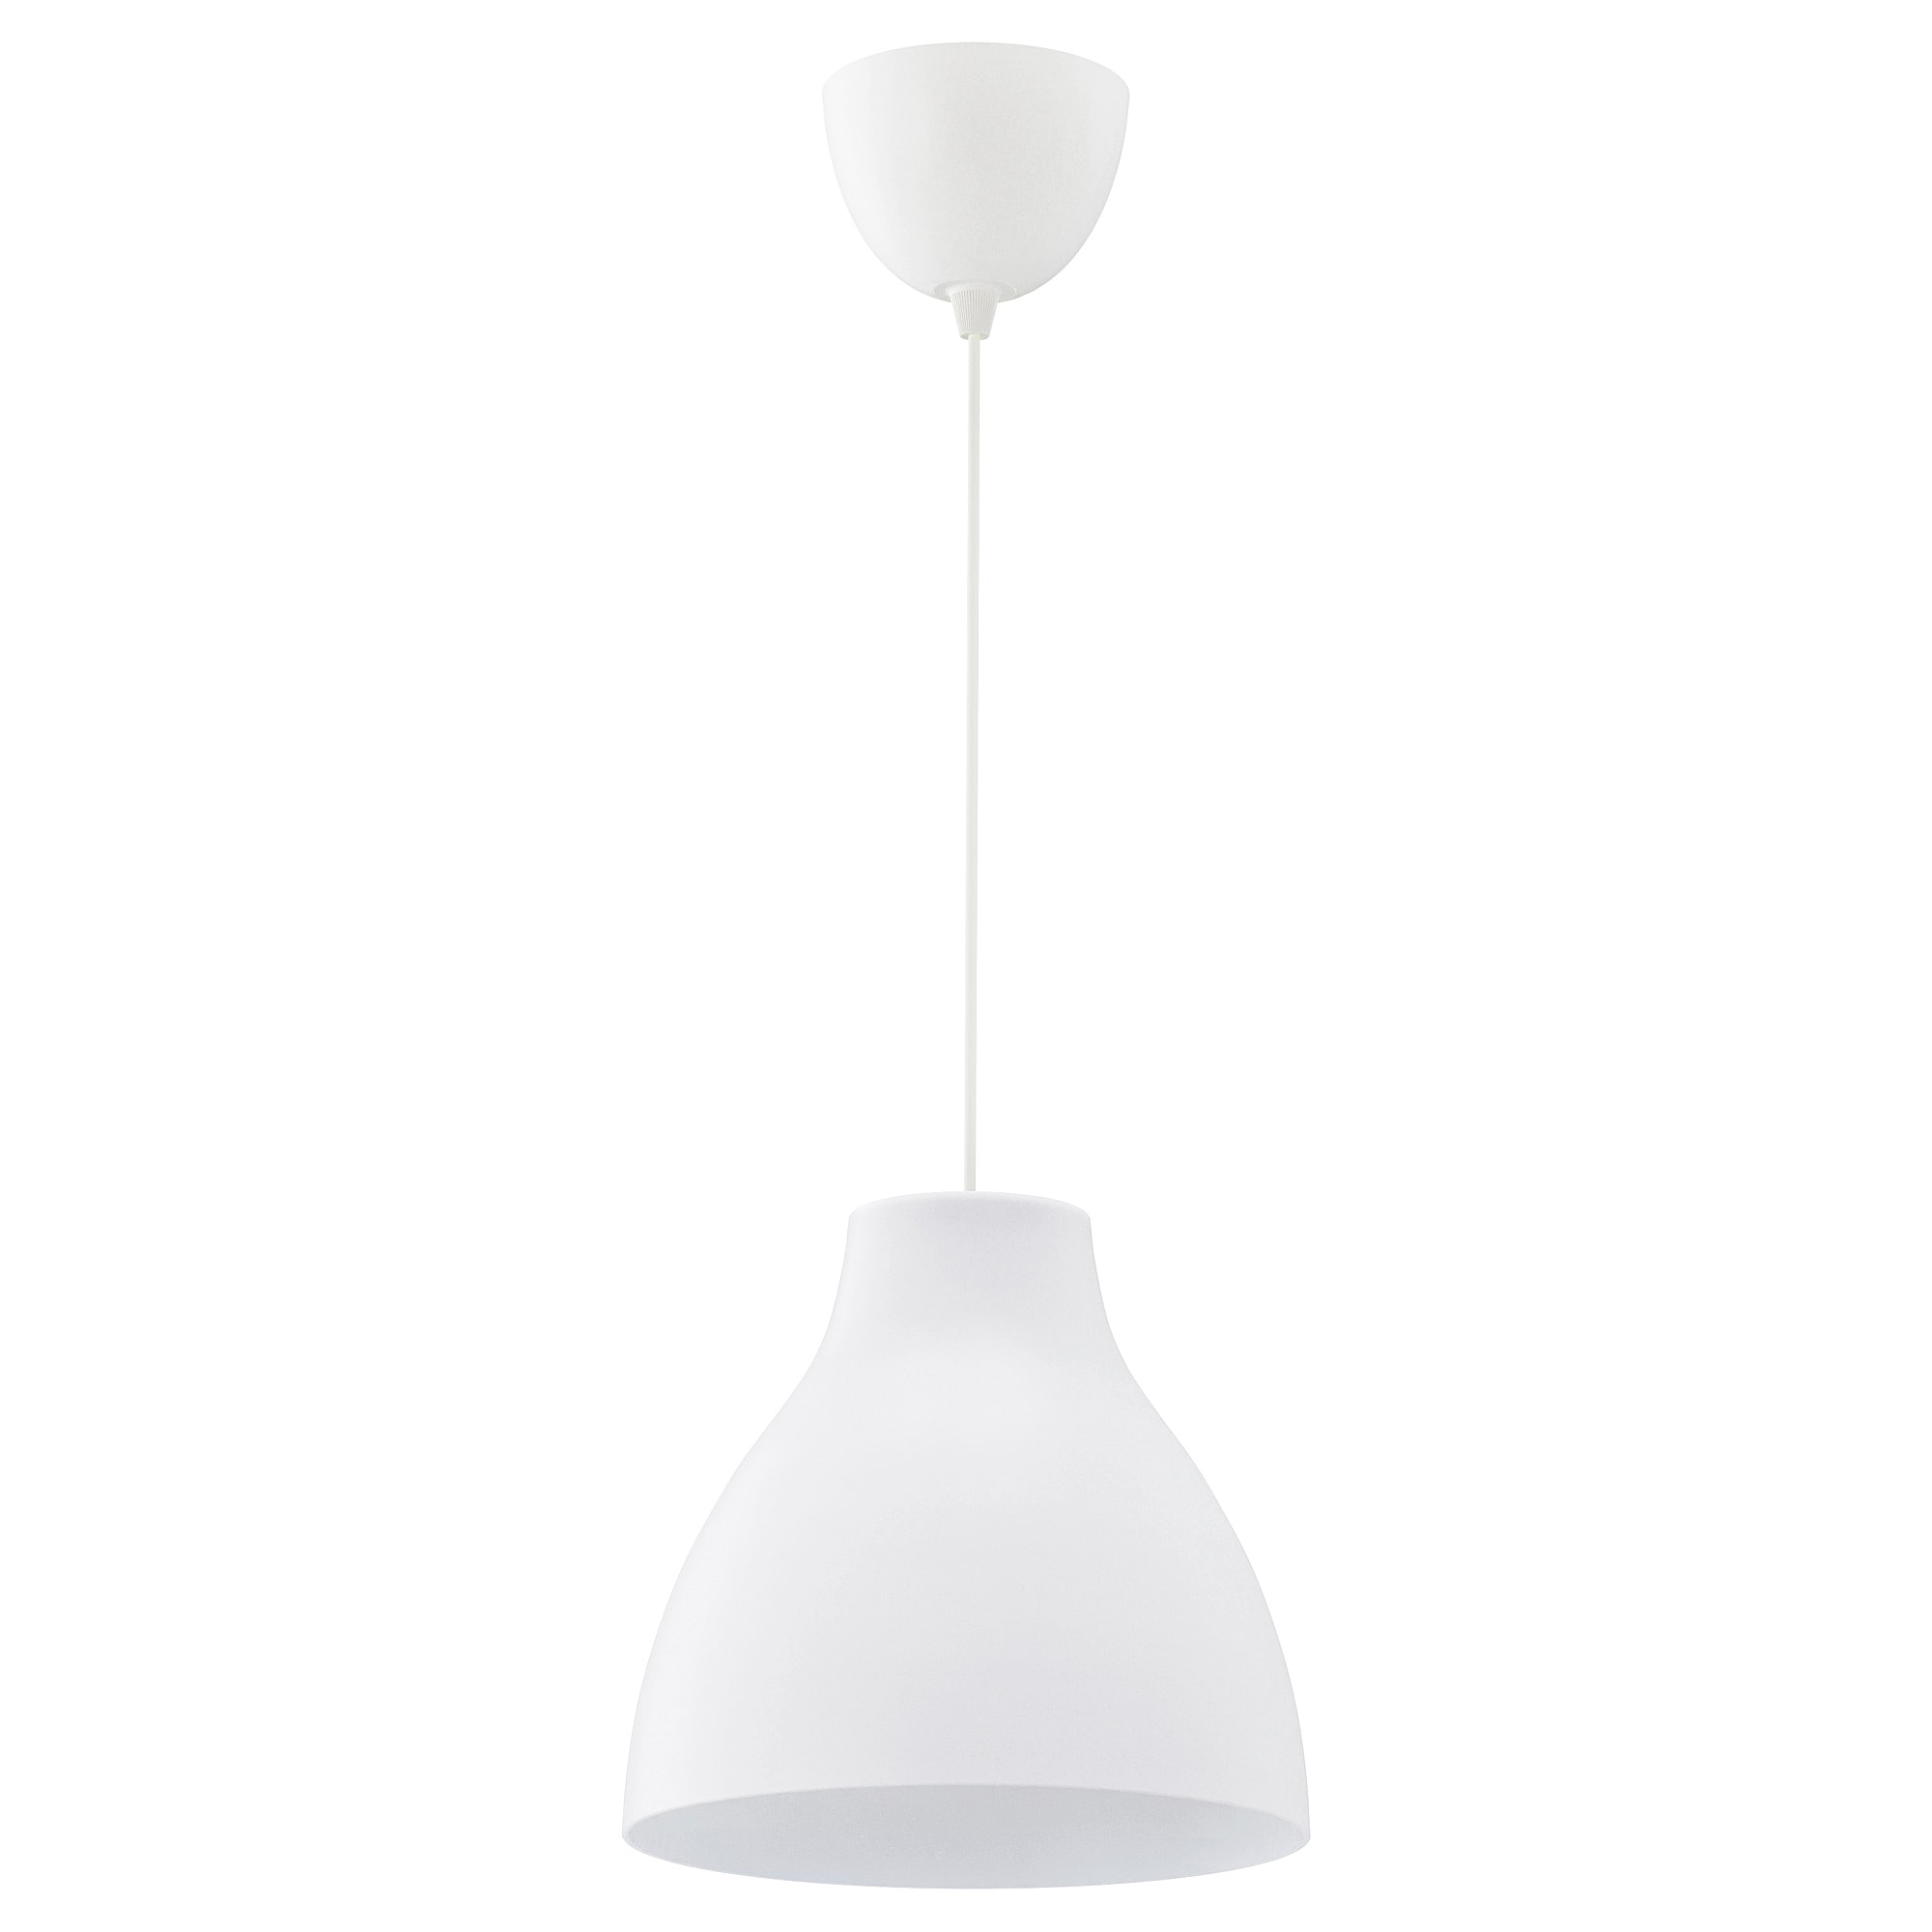 room commercial light whatsapp shop sgled industrial ceiling bay led sg singapore low lighting track image